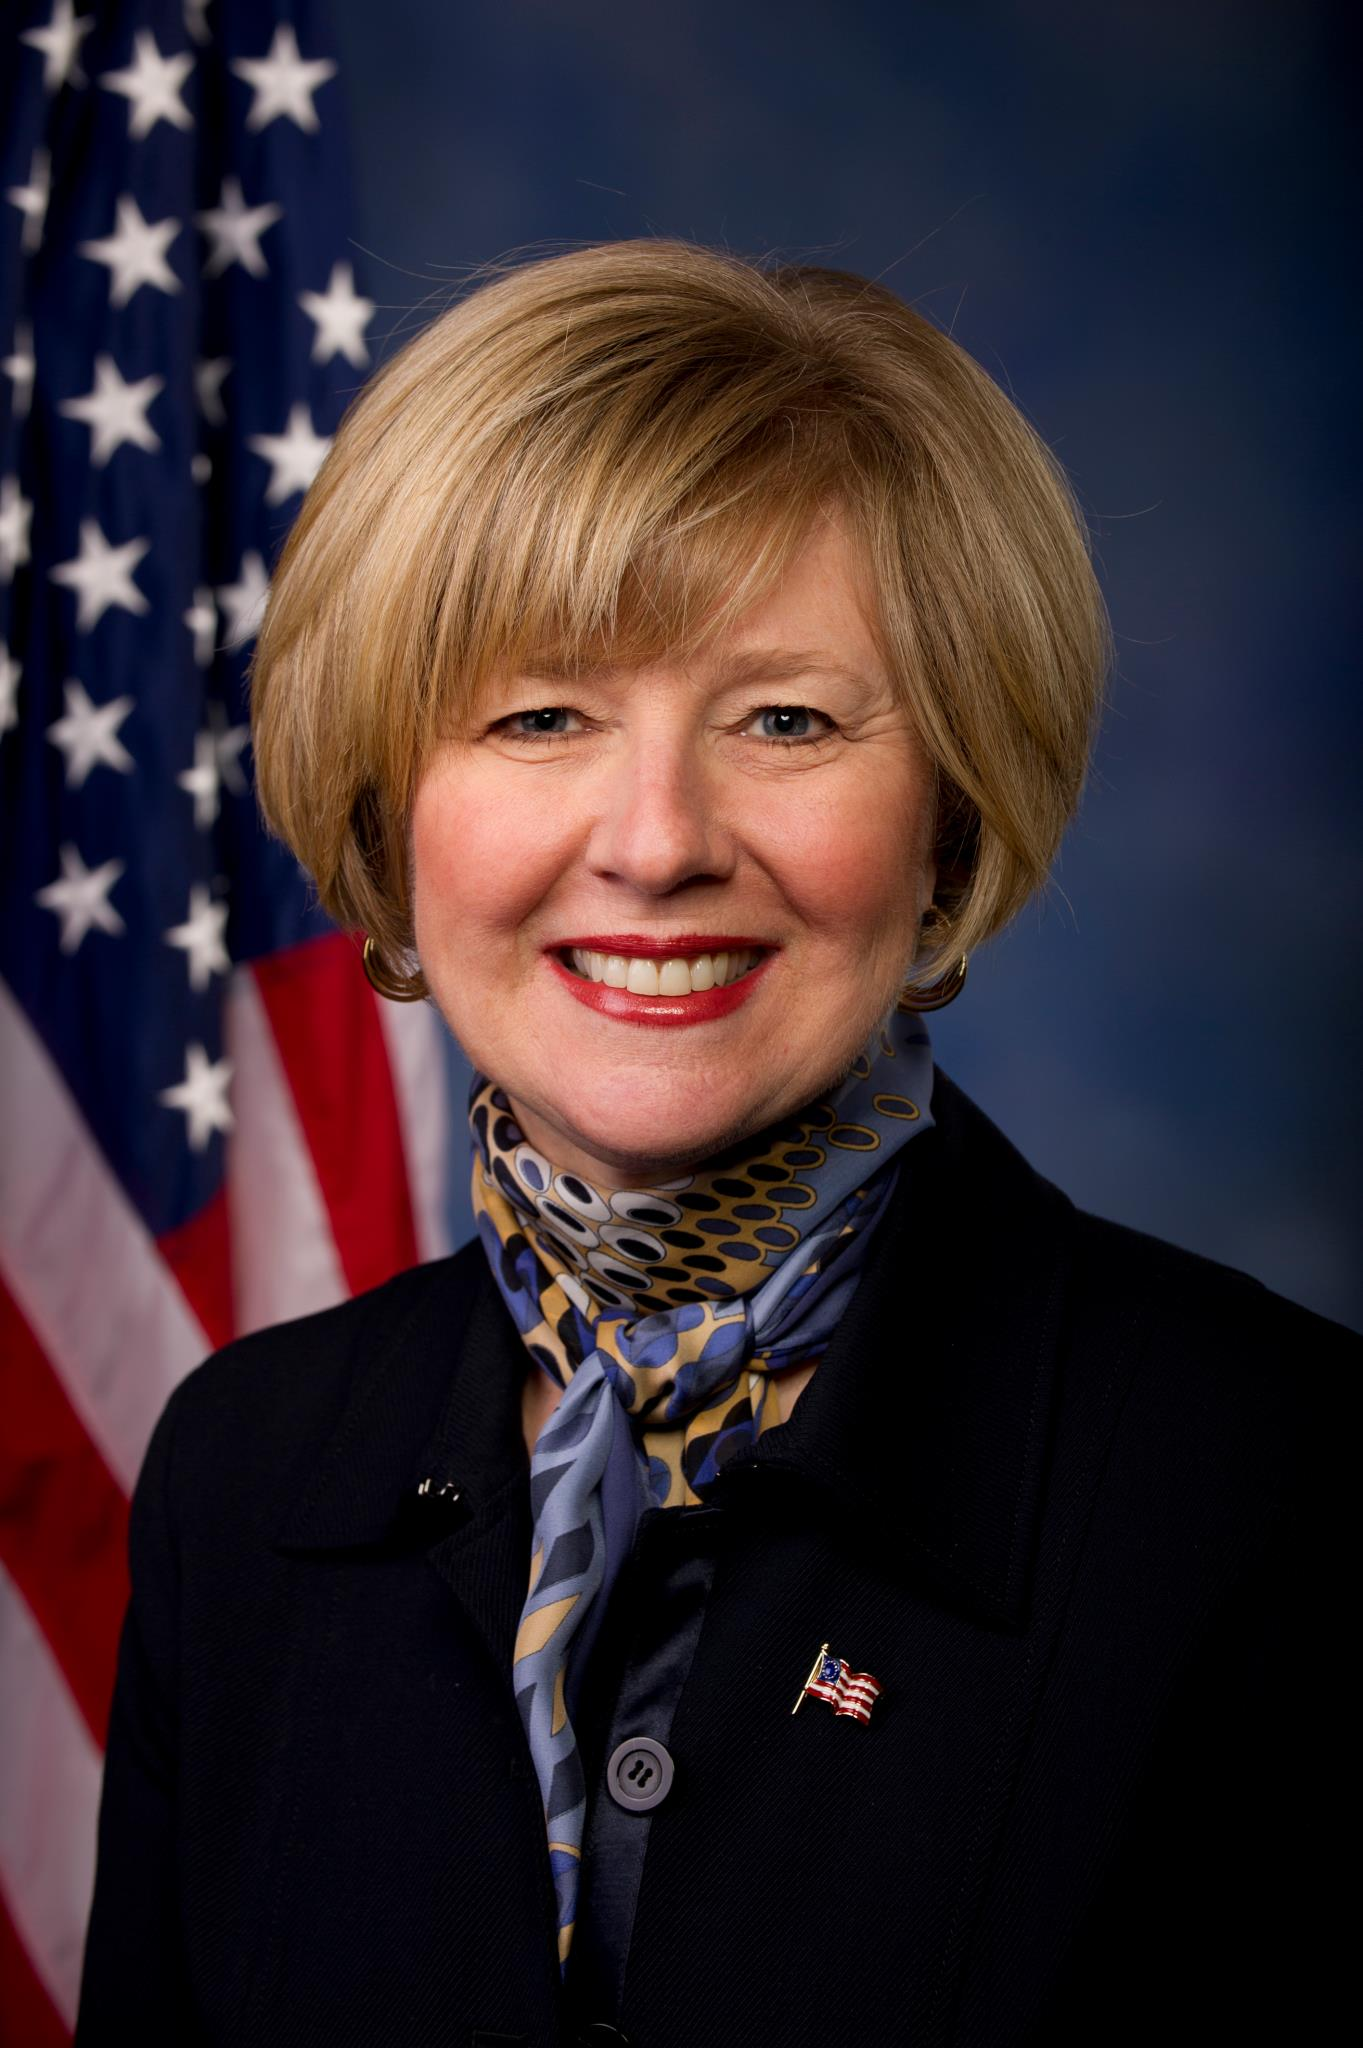 U.S. Rep. Susan Brooks